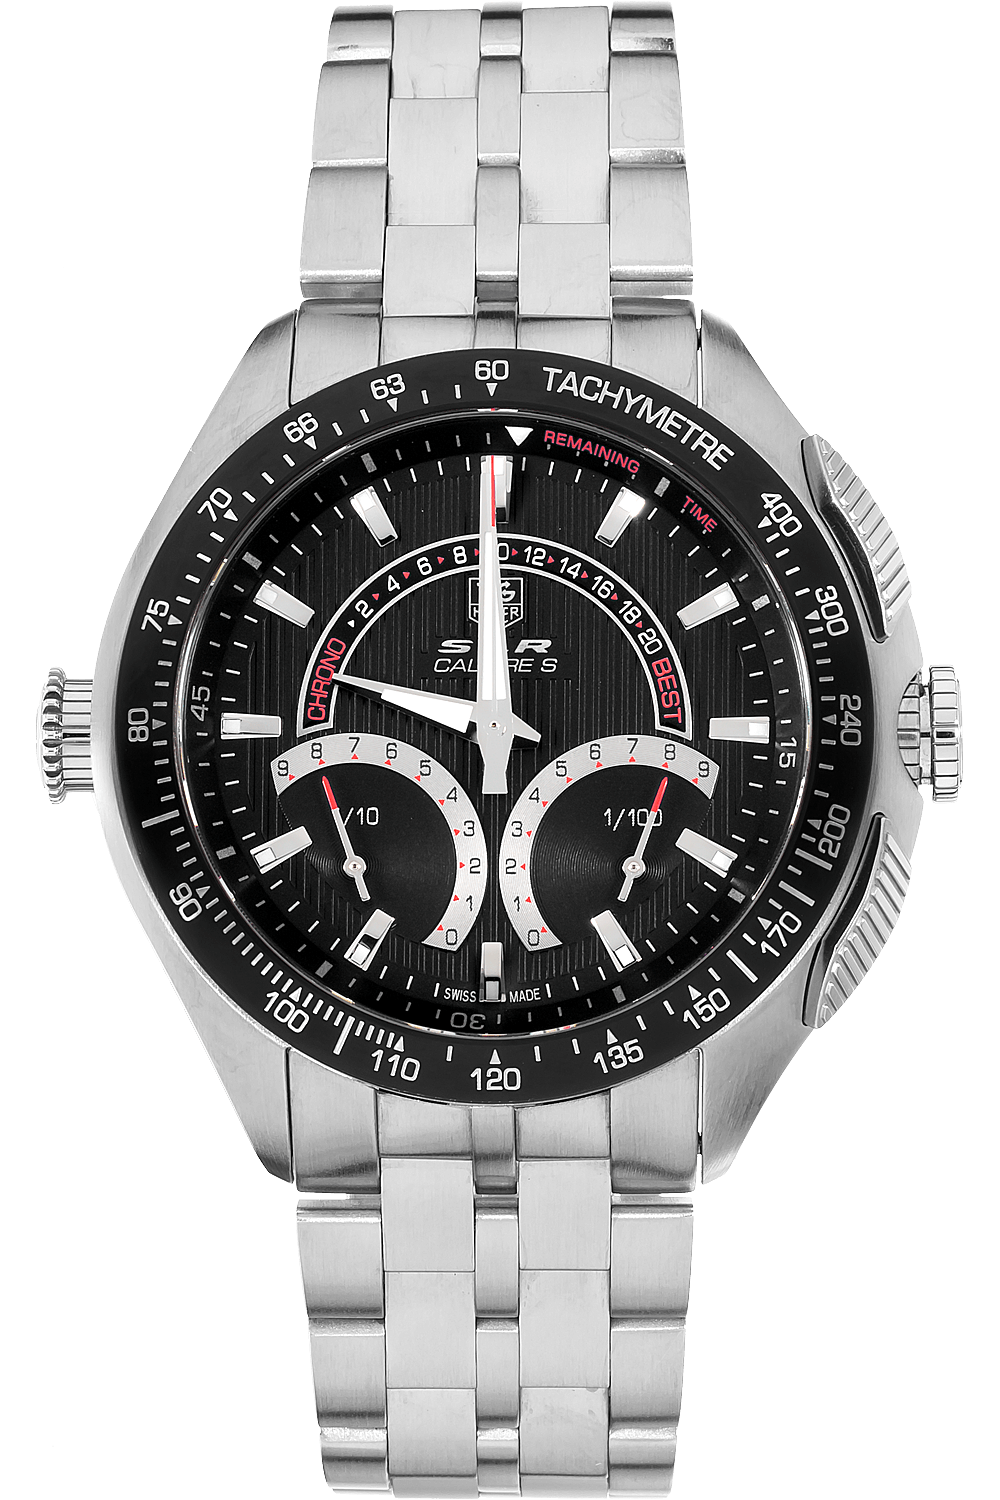 Mercedes Certified Pre Owned >> Pre-Owned TAG Heuer Mercedes Benz SLR Calibre S Quartz ...